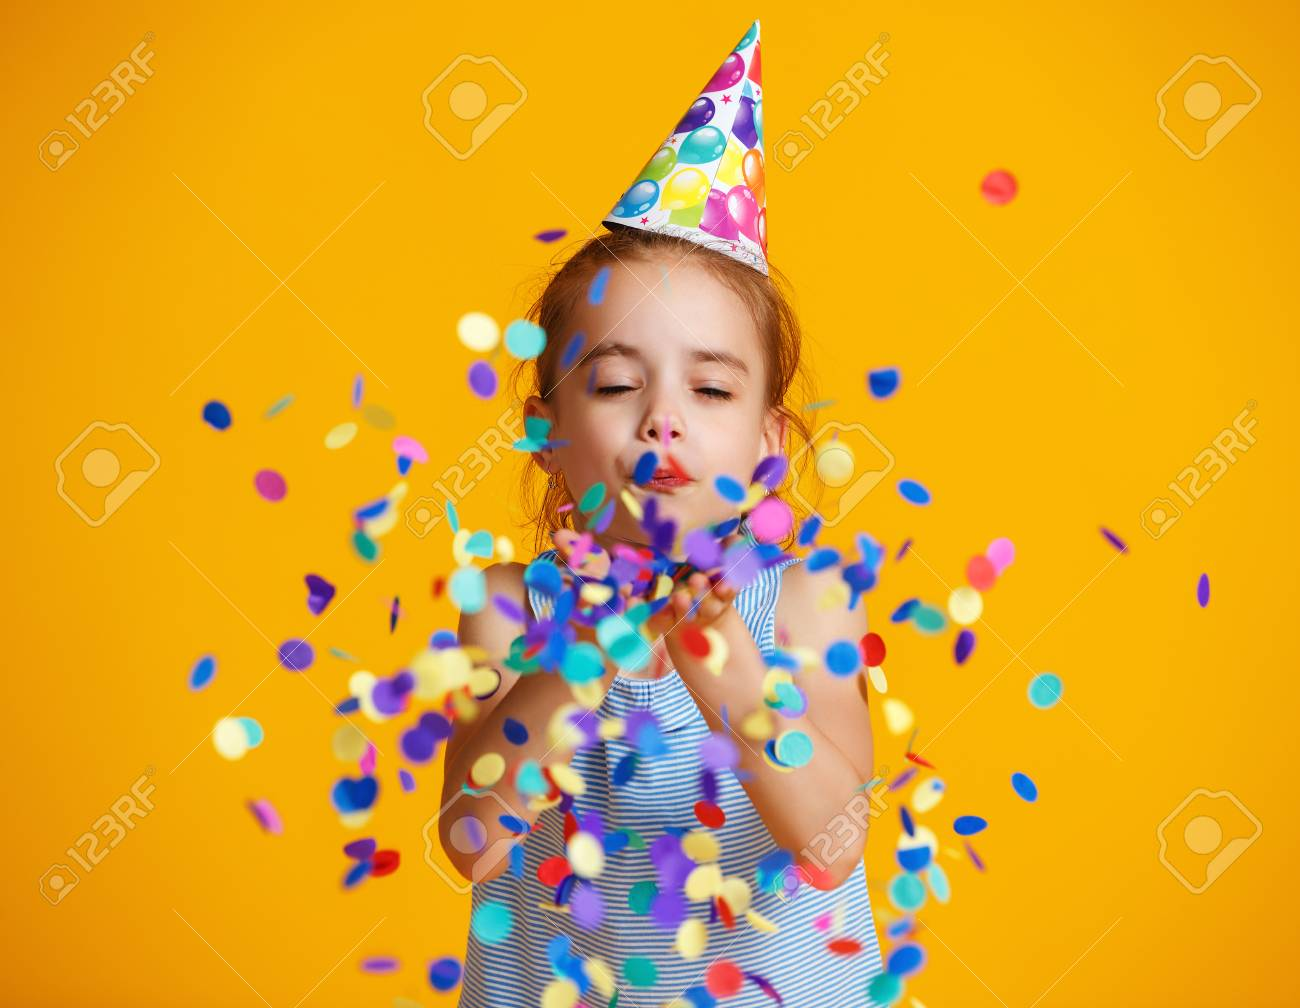 happy birthday child girl with confetti on colored yellow background - 125136174